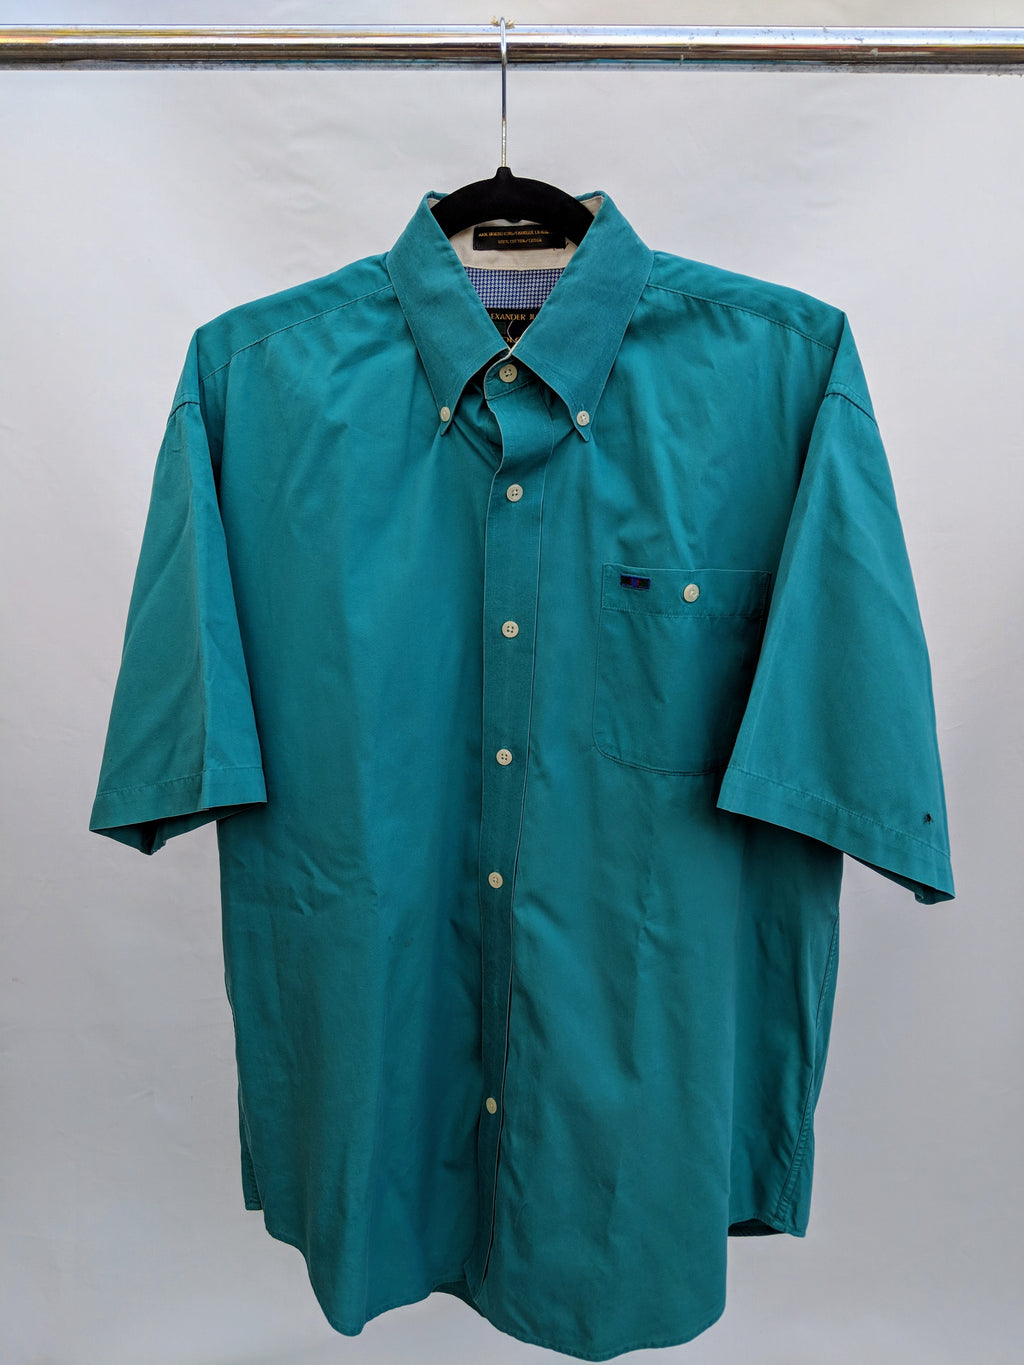 Alexander Julian Button-up Shirt